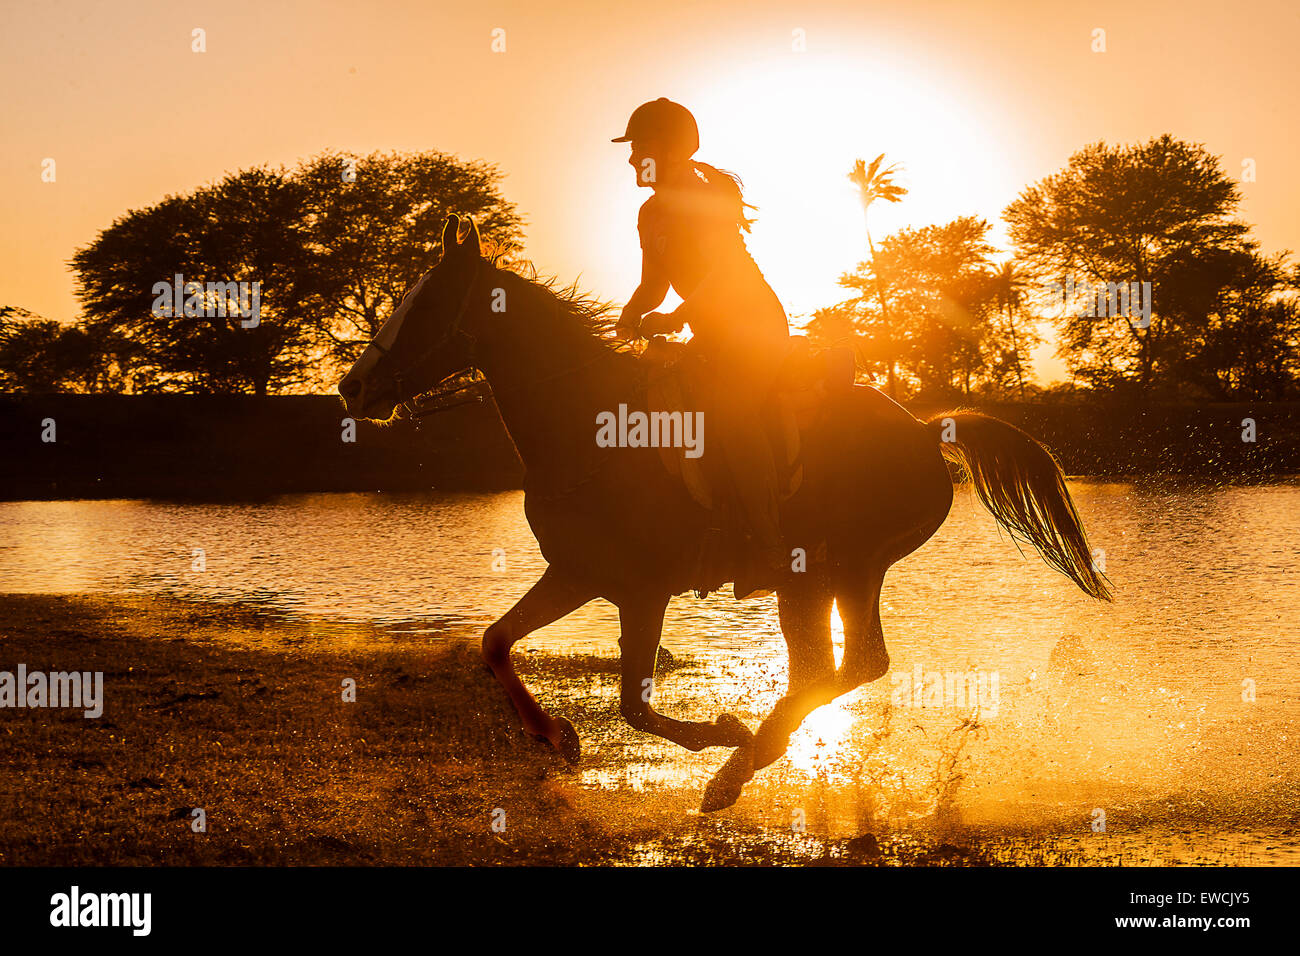 Kathiawari Horse. Woman rider galloping on a chestnut mare, silhouetted against the setting sun. Rajasthan, India - Stock Image